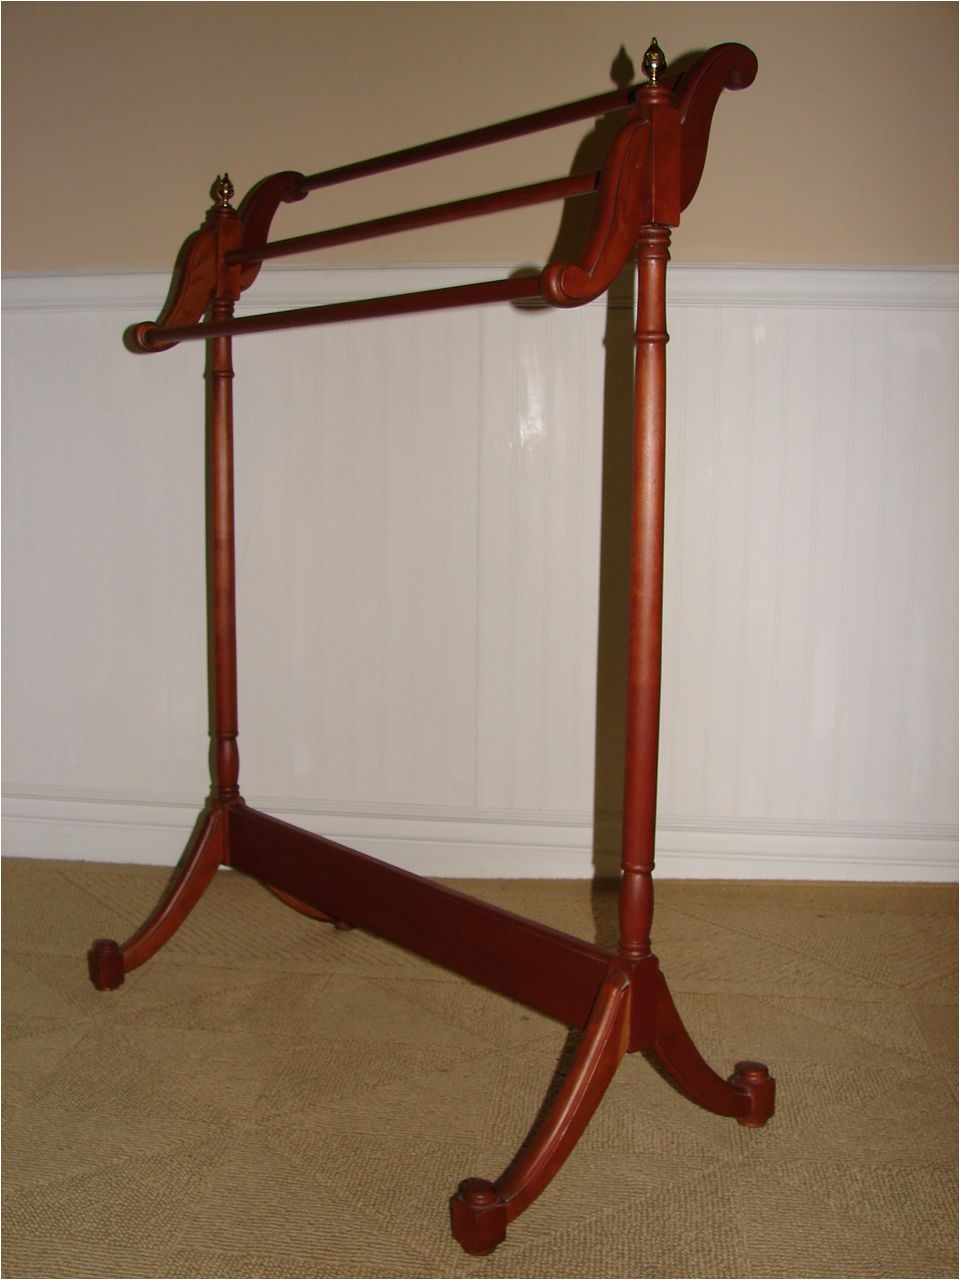 White Wall Mounted Quilt Rack Vintage Cherry Quilt Rack Quilt Stand Valet with Brass Finials